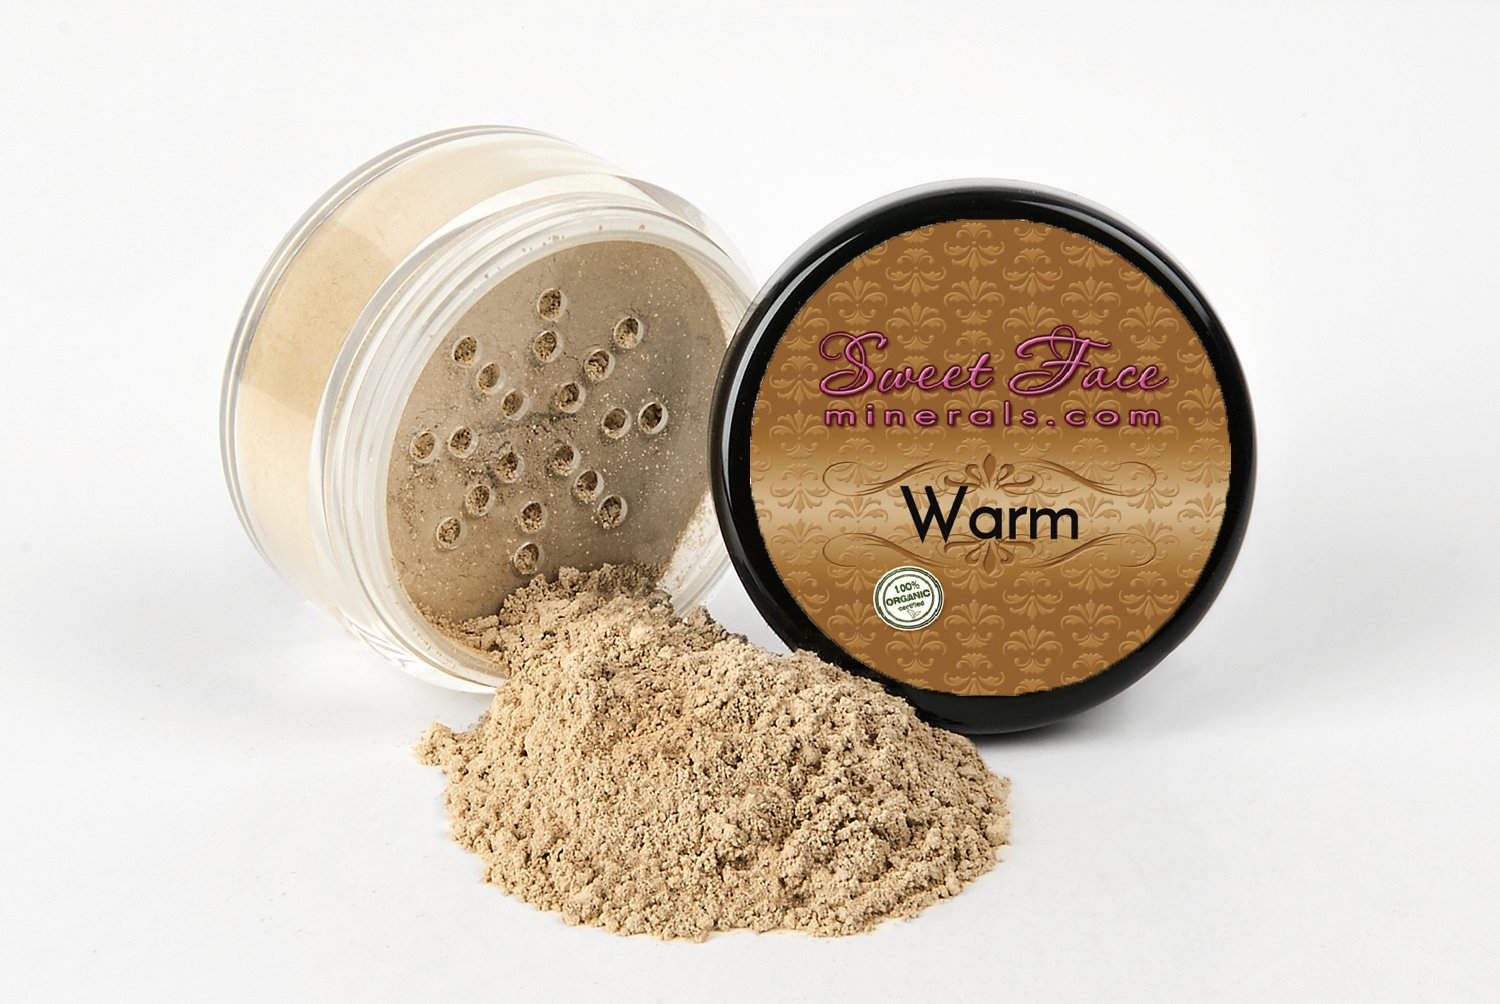 WARM (Neutral-Most Popular) FOUNDATION Mineral Makeup (5 gram Sample Size Jar) Matte Loose Powder Bare Face Cosmetics Full Coverage Long Lasting All Skin Types SPF 18